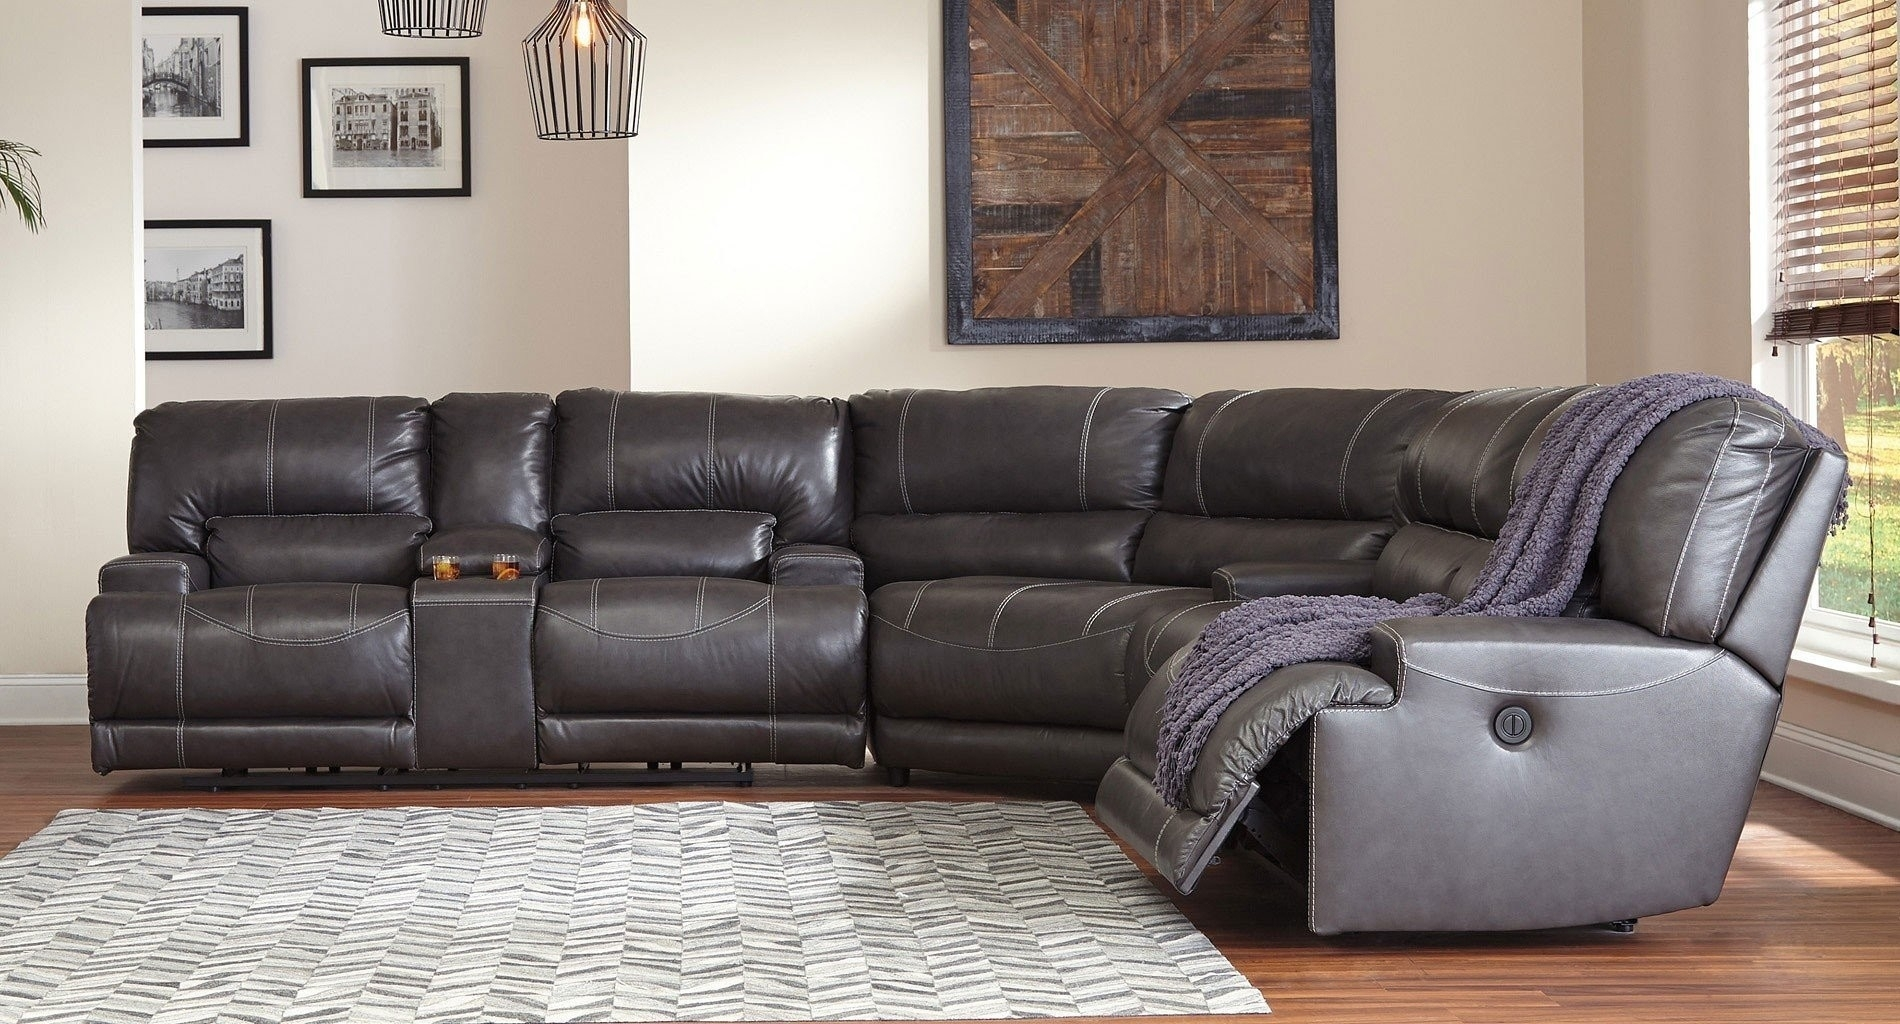 Grey Leather Reclining Sectional Clyde 3 Piece Power W Pwr Hdrst intended for Clyde Grey Leather 3 Piece Power Reclining Sectionals With Pwr Hdrst & Usb (Image 10 of 30)